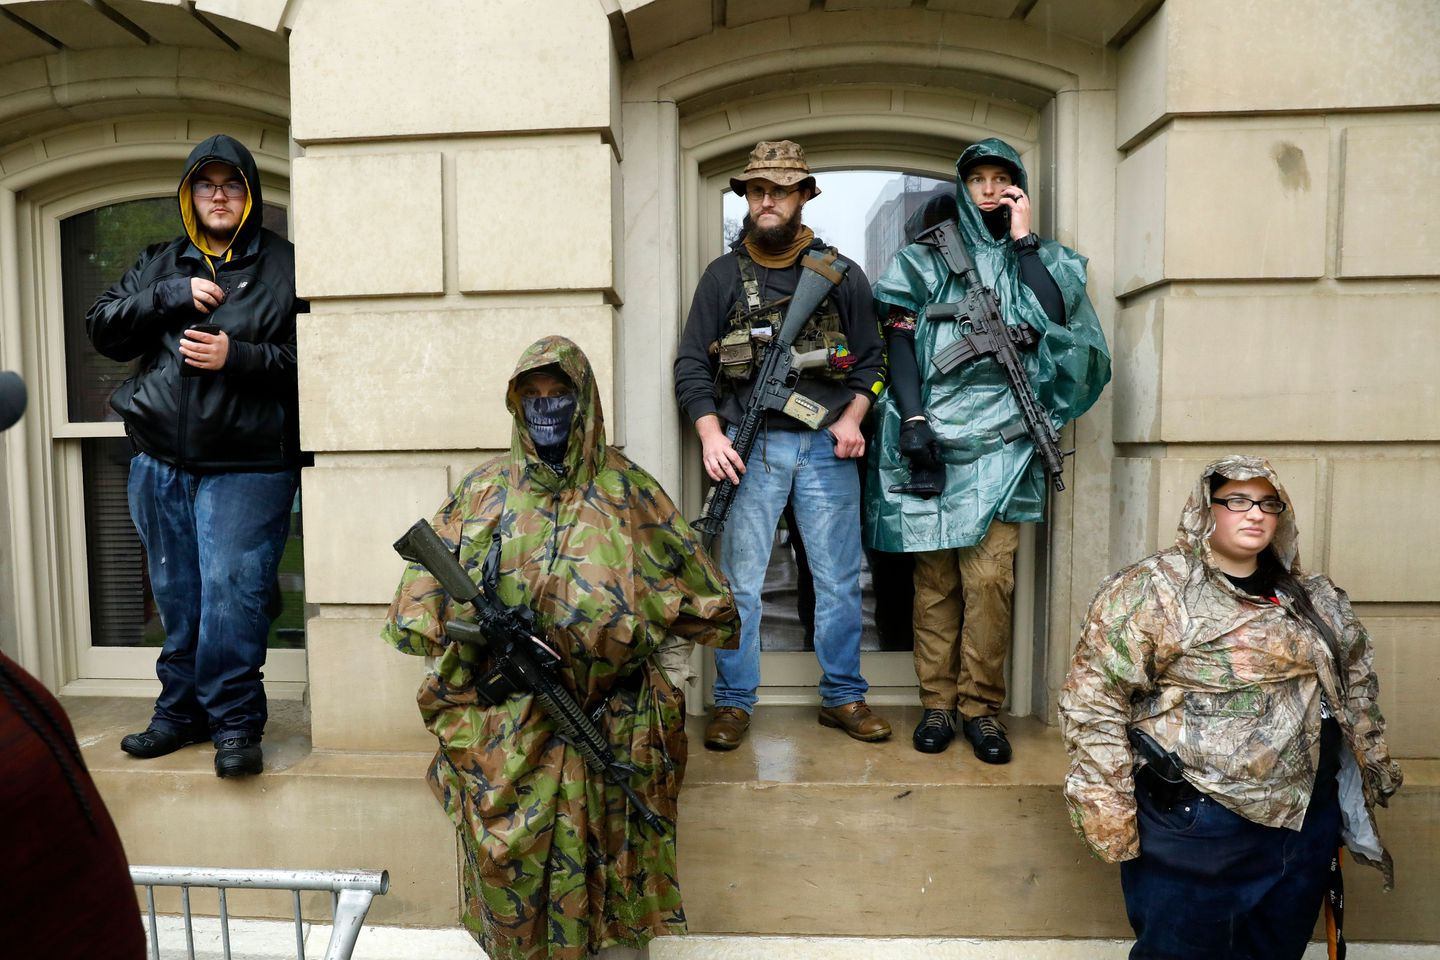 Armed demonstrators in Lansing, Michigan, protest the coronavirus pandemic stay-at-home orders on May 14.